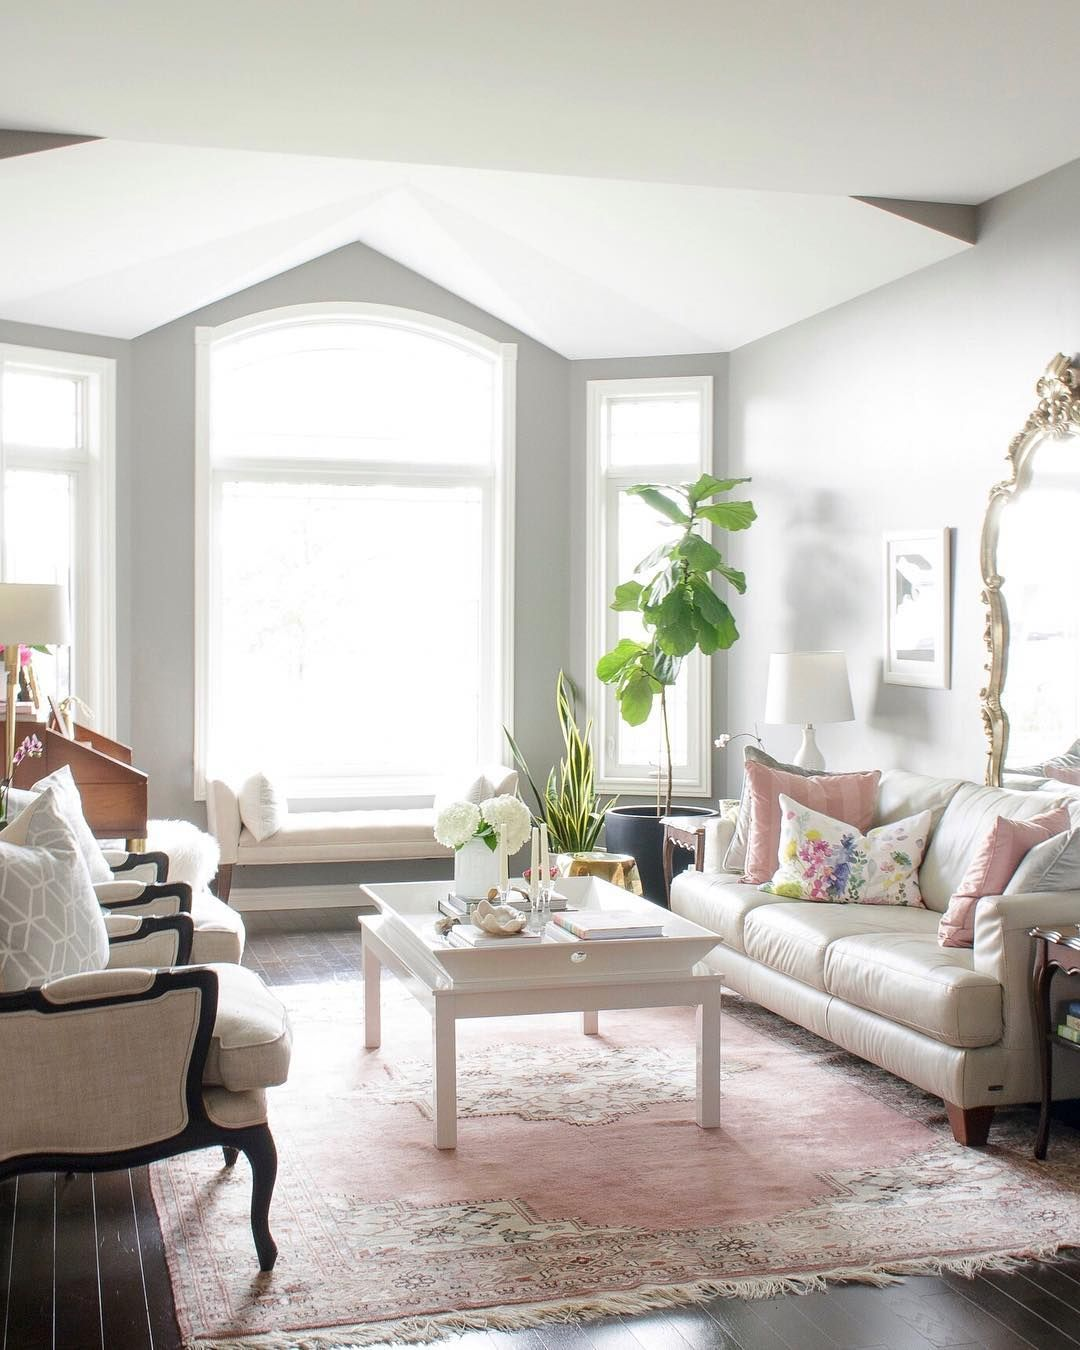 Colorful Vintage Living Room Chairs Composition - Living Room Design ...